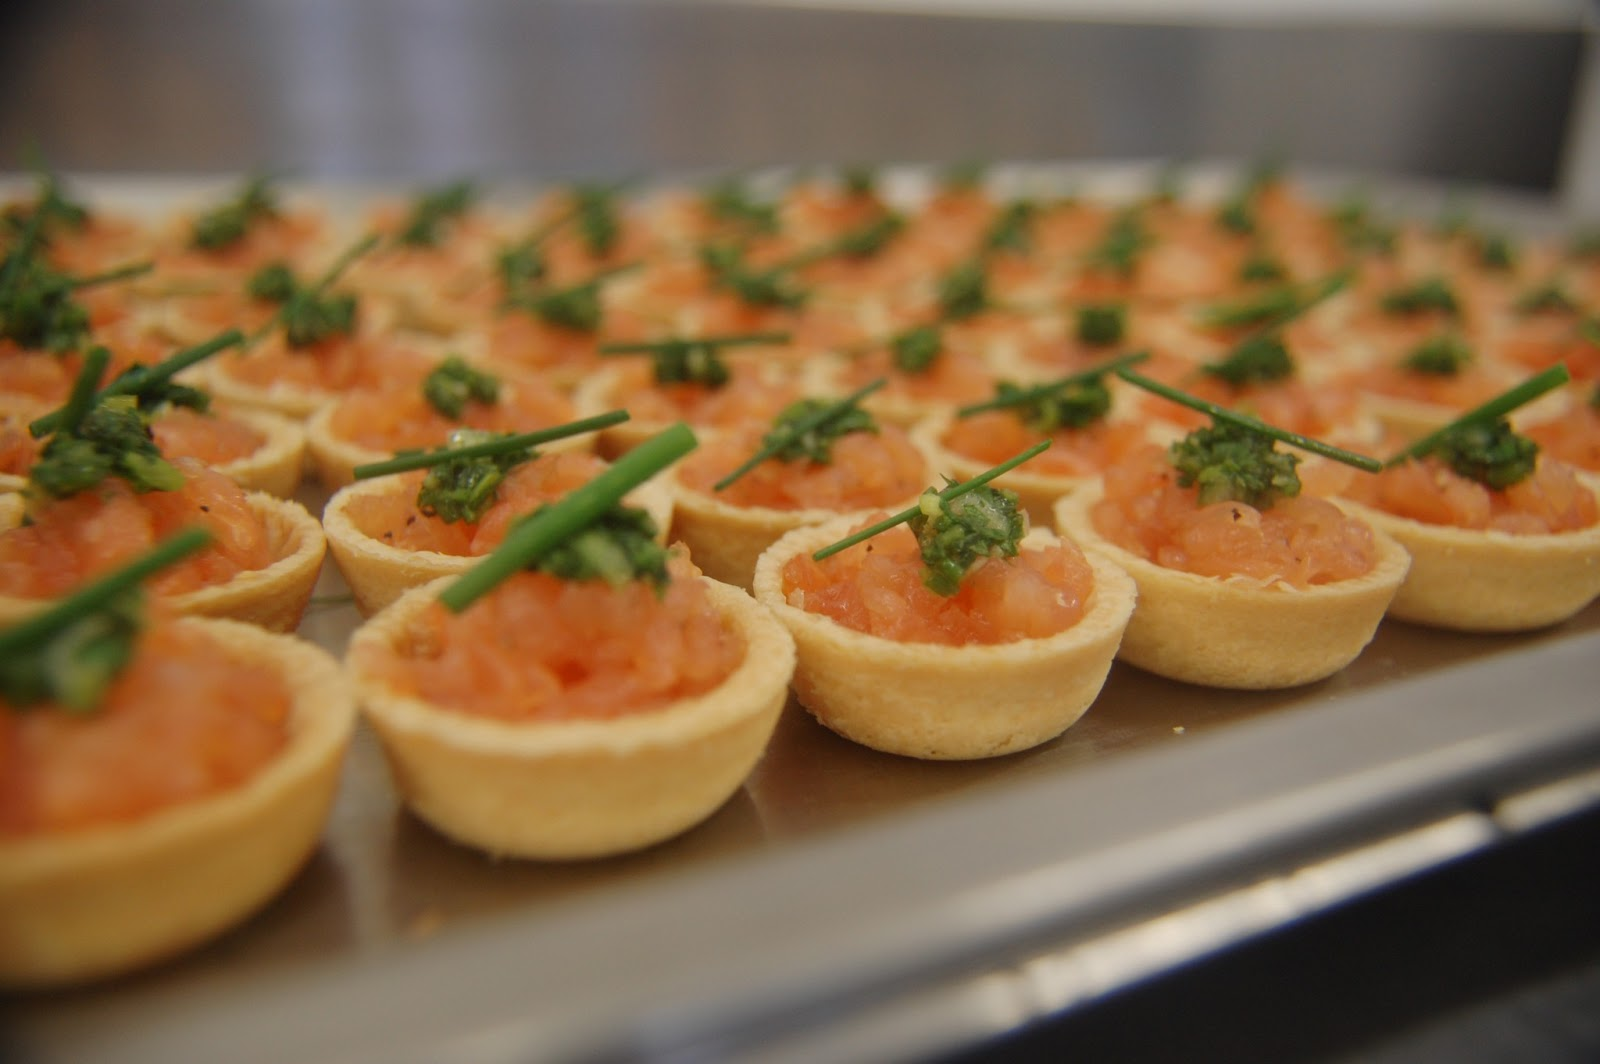 Canapee Weddings At Powerscourt House Canapes And Starters